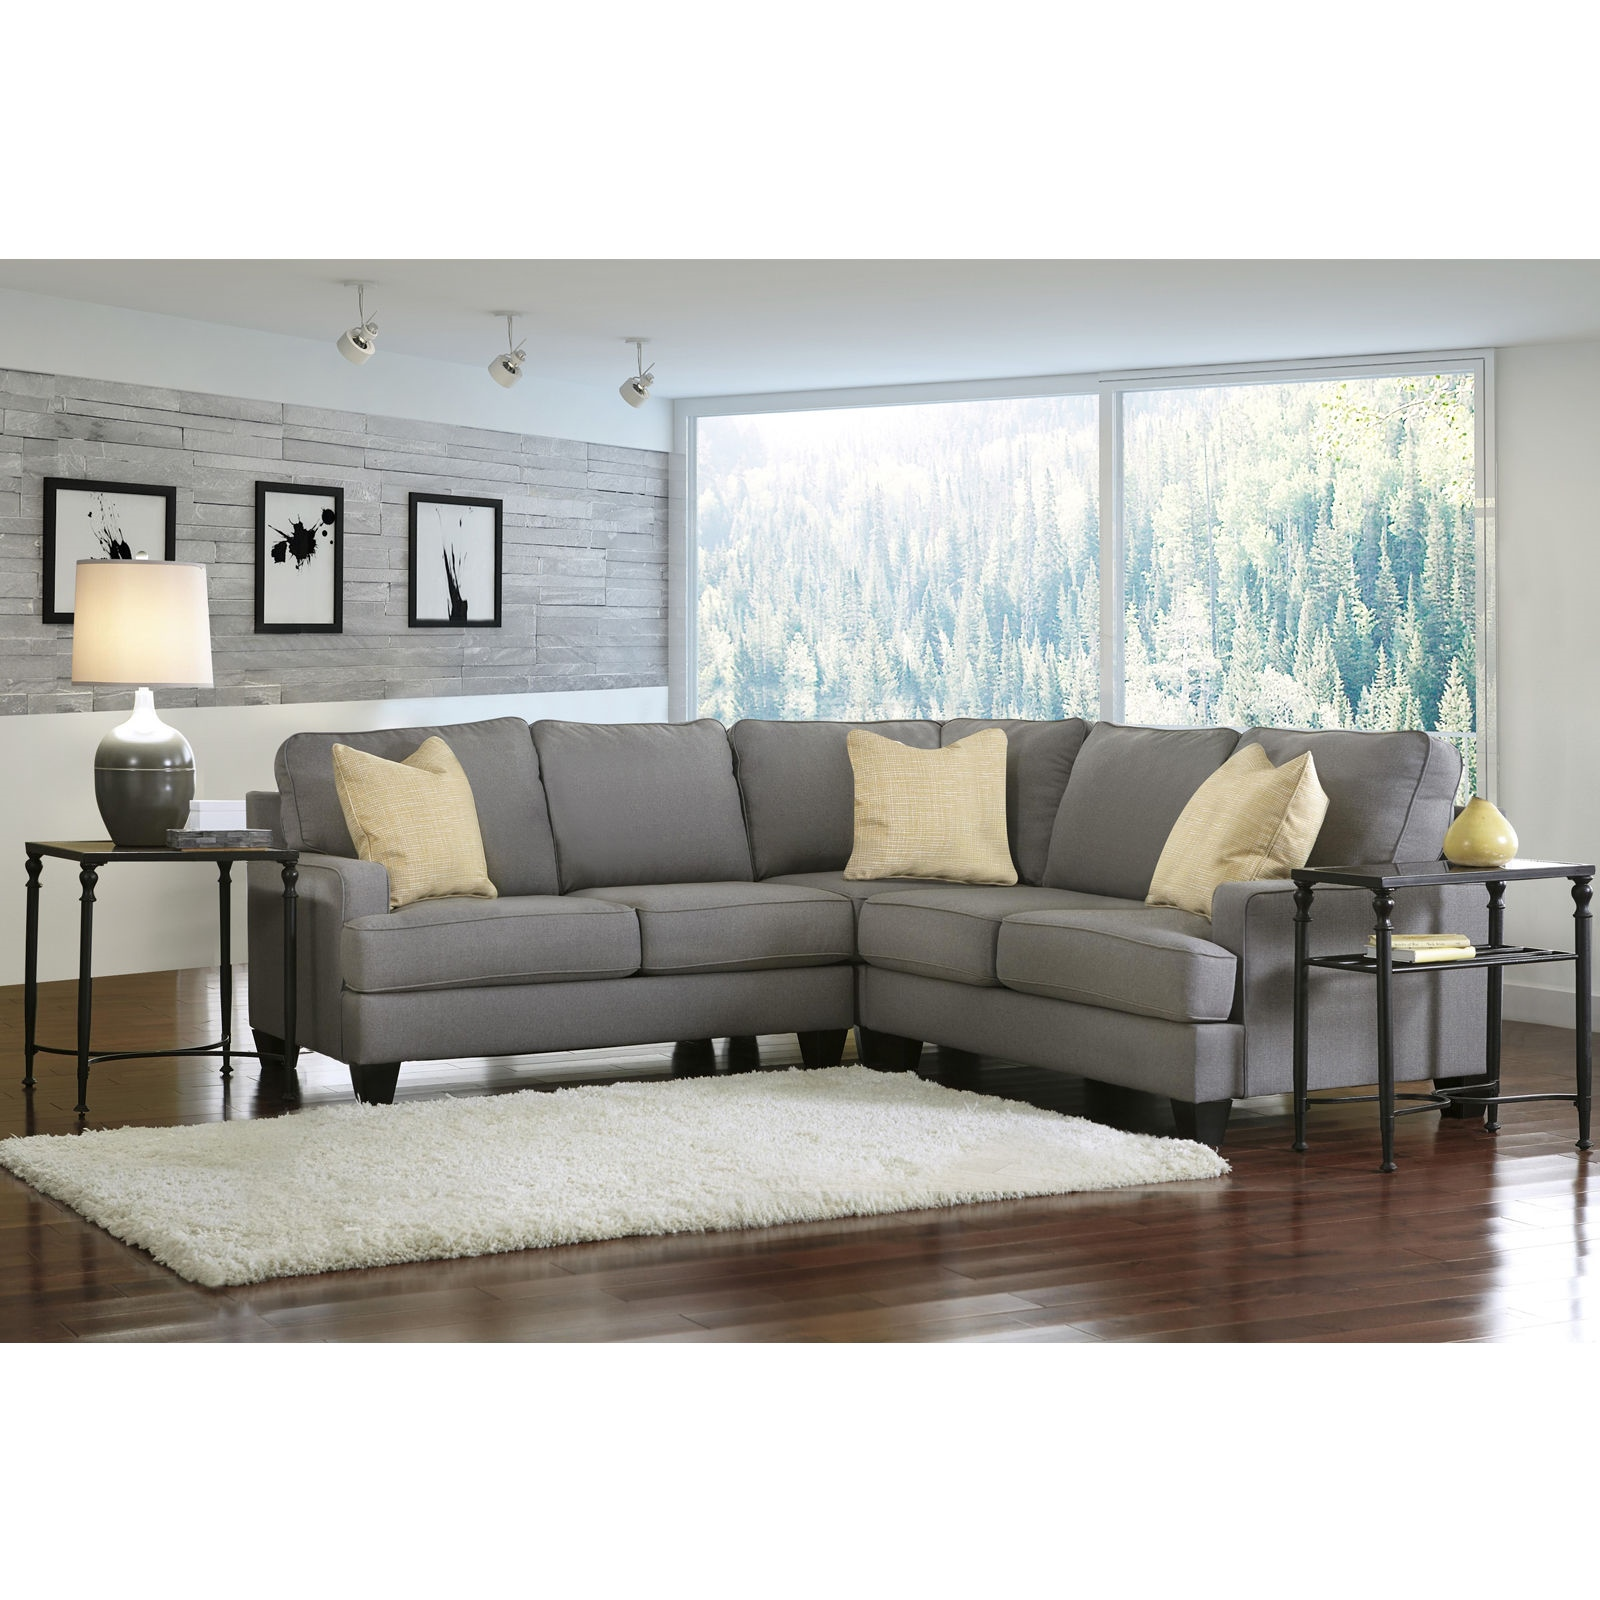 L Shape Fabric Retro Modern Danish Lounge Furniture Suite Chaise